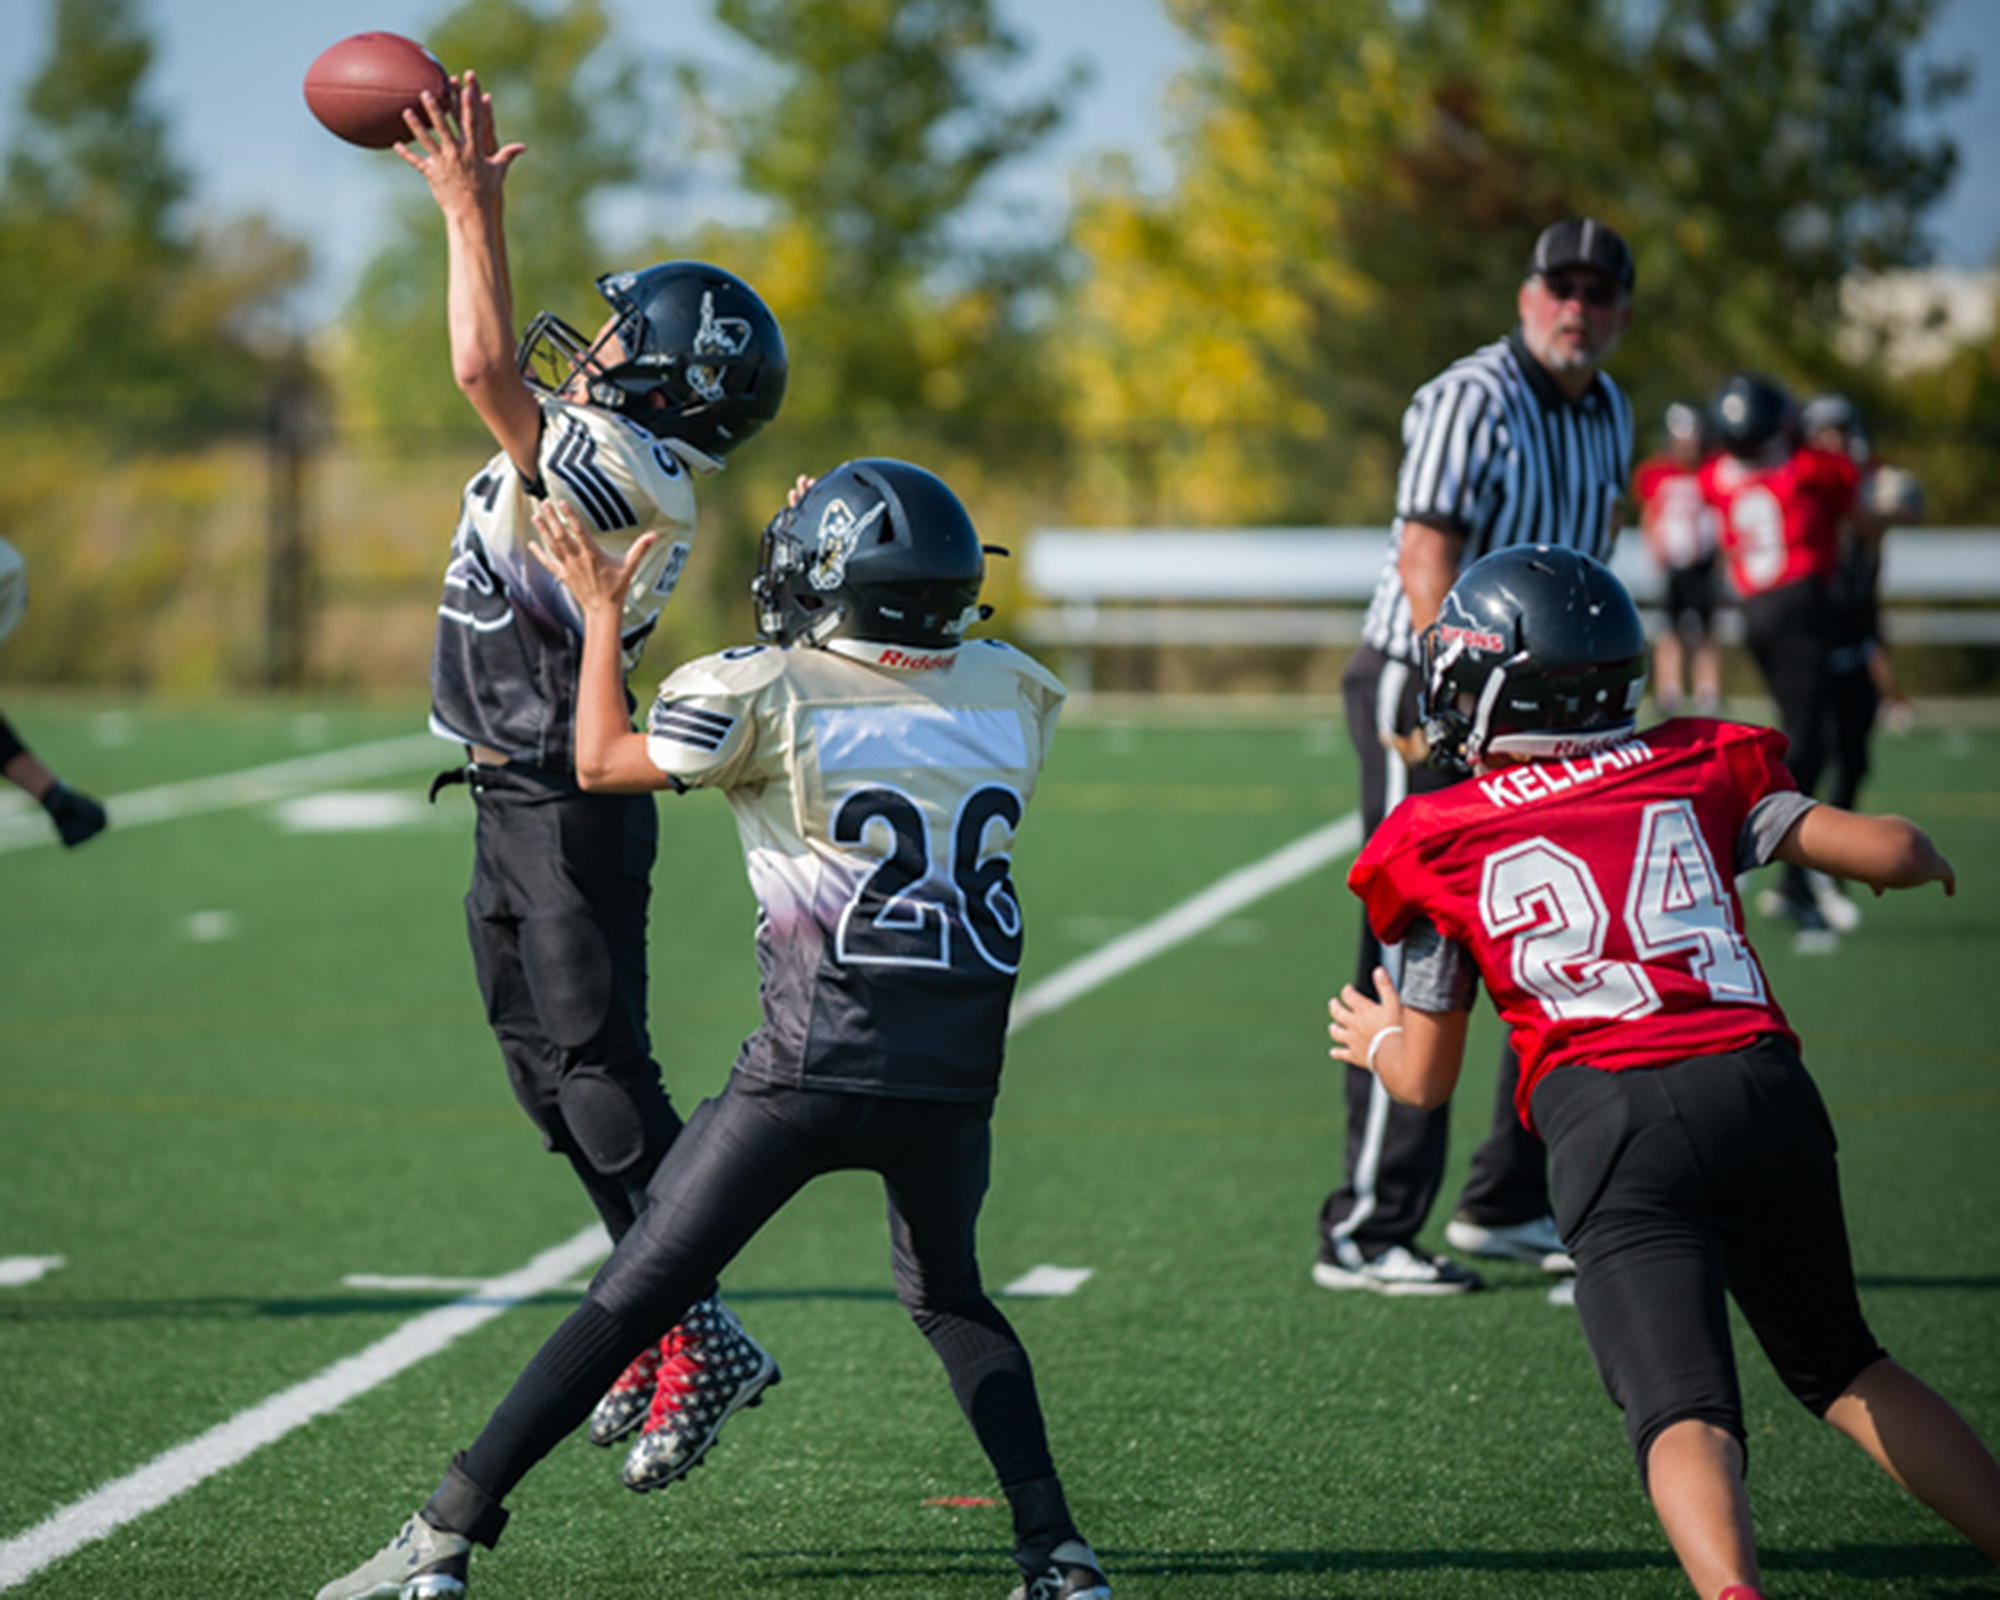 Niagara Generals' Patrick Scully intercepts a pass in OFL peewee football action